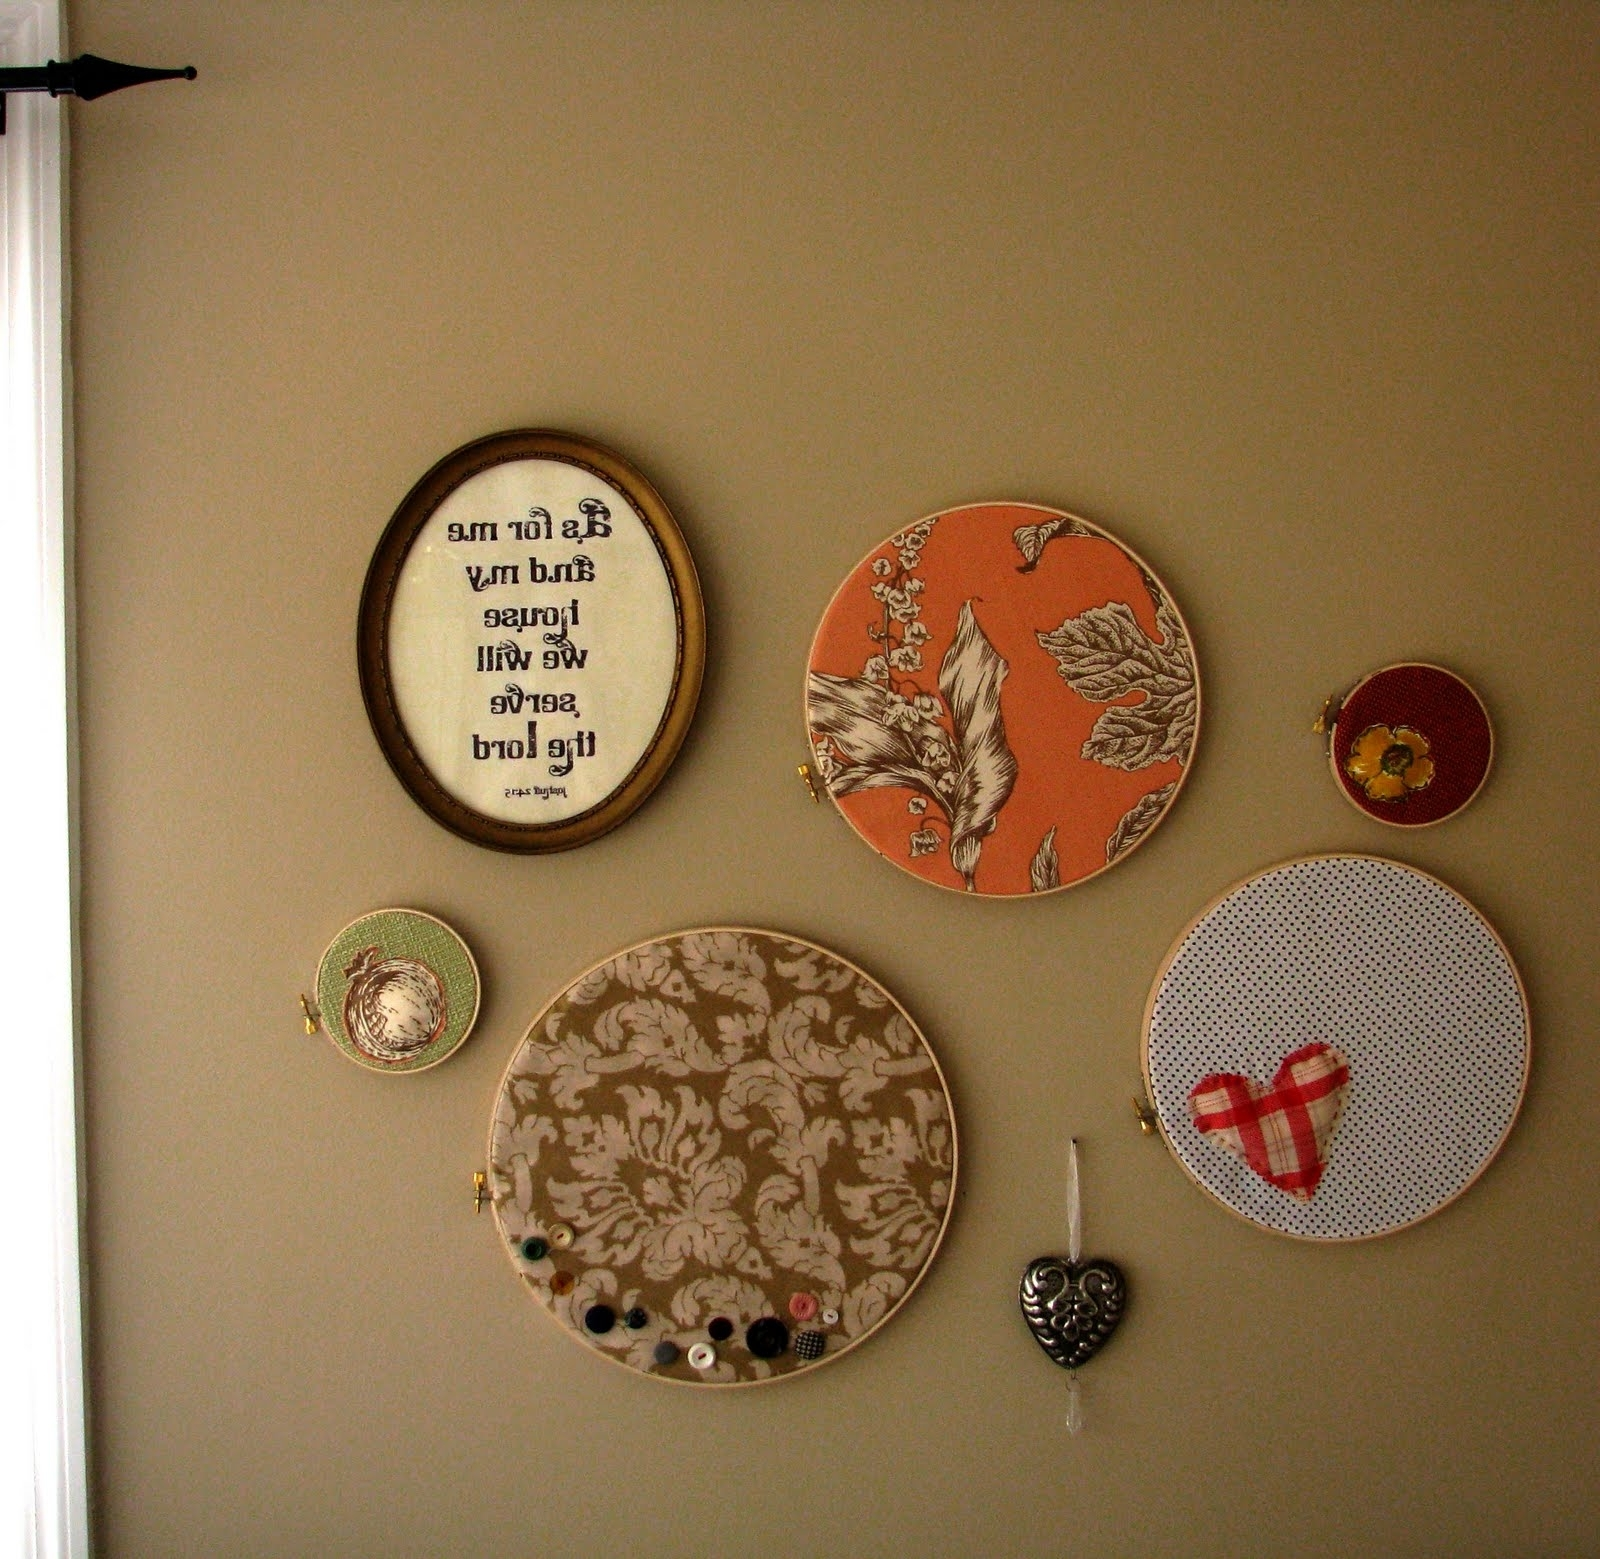 Embroidery Hoop Fabric Wall Art Pertaining To Latest Mostaza Seed: I Heart Hoop Wall Art (View 7 of 15)